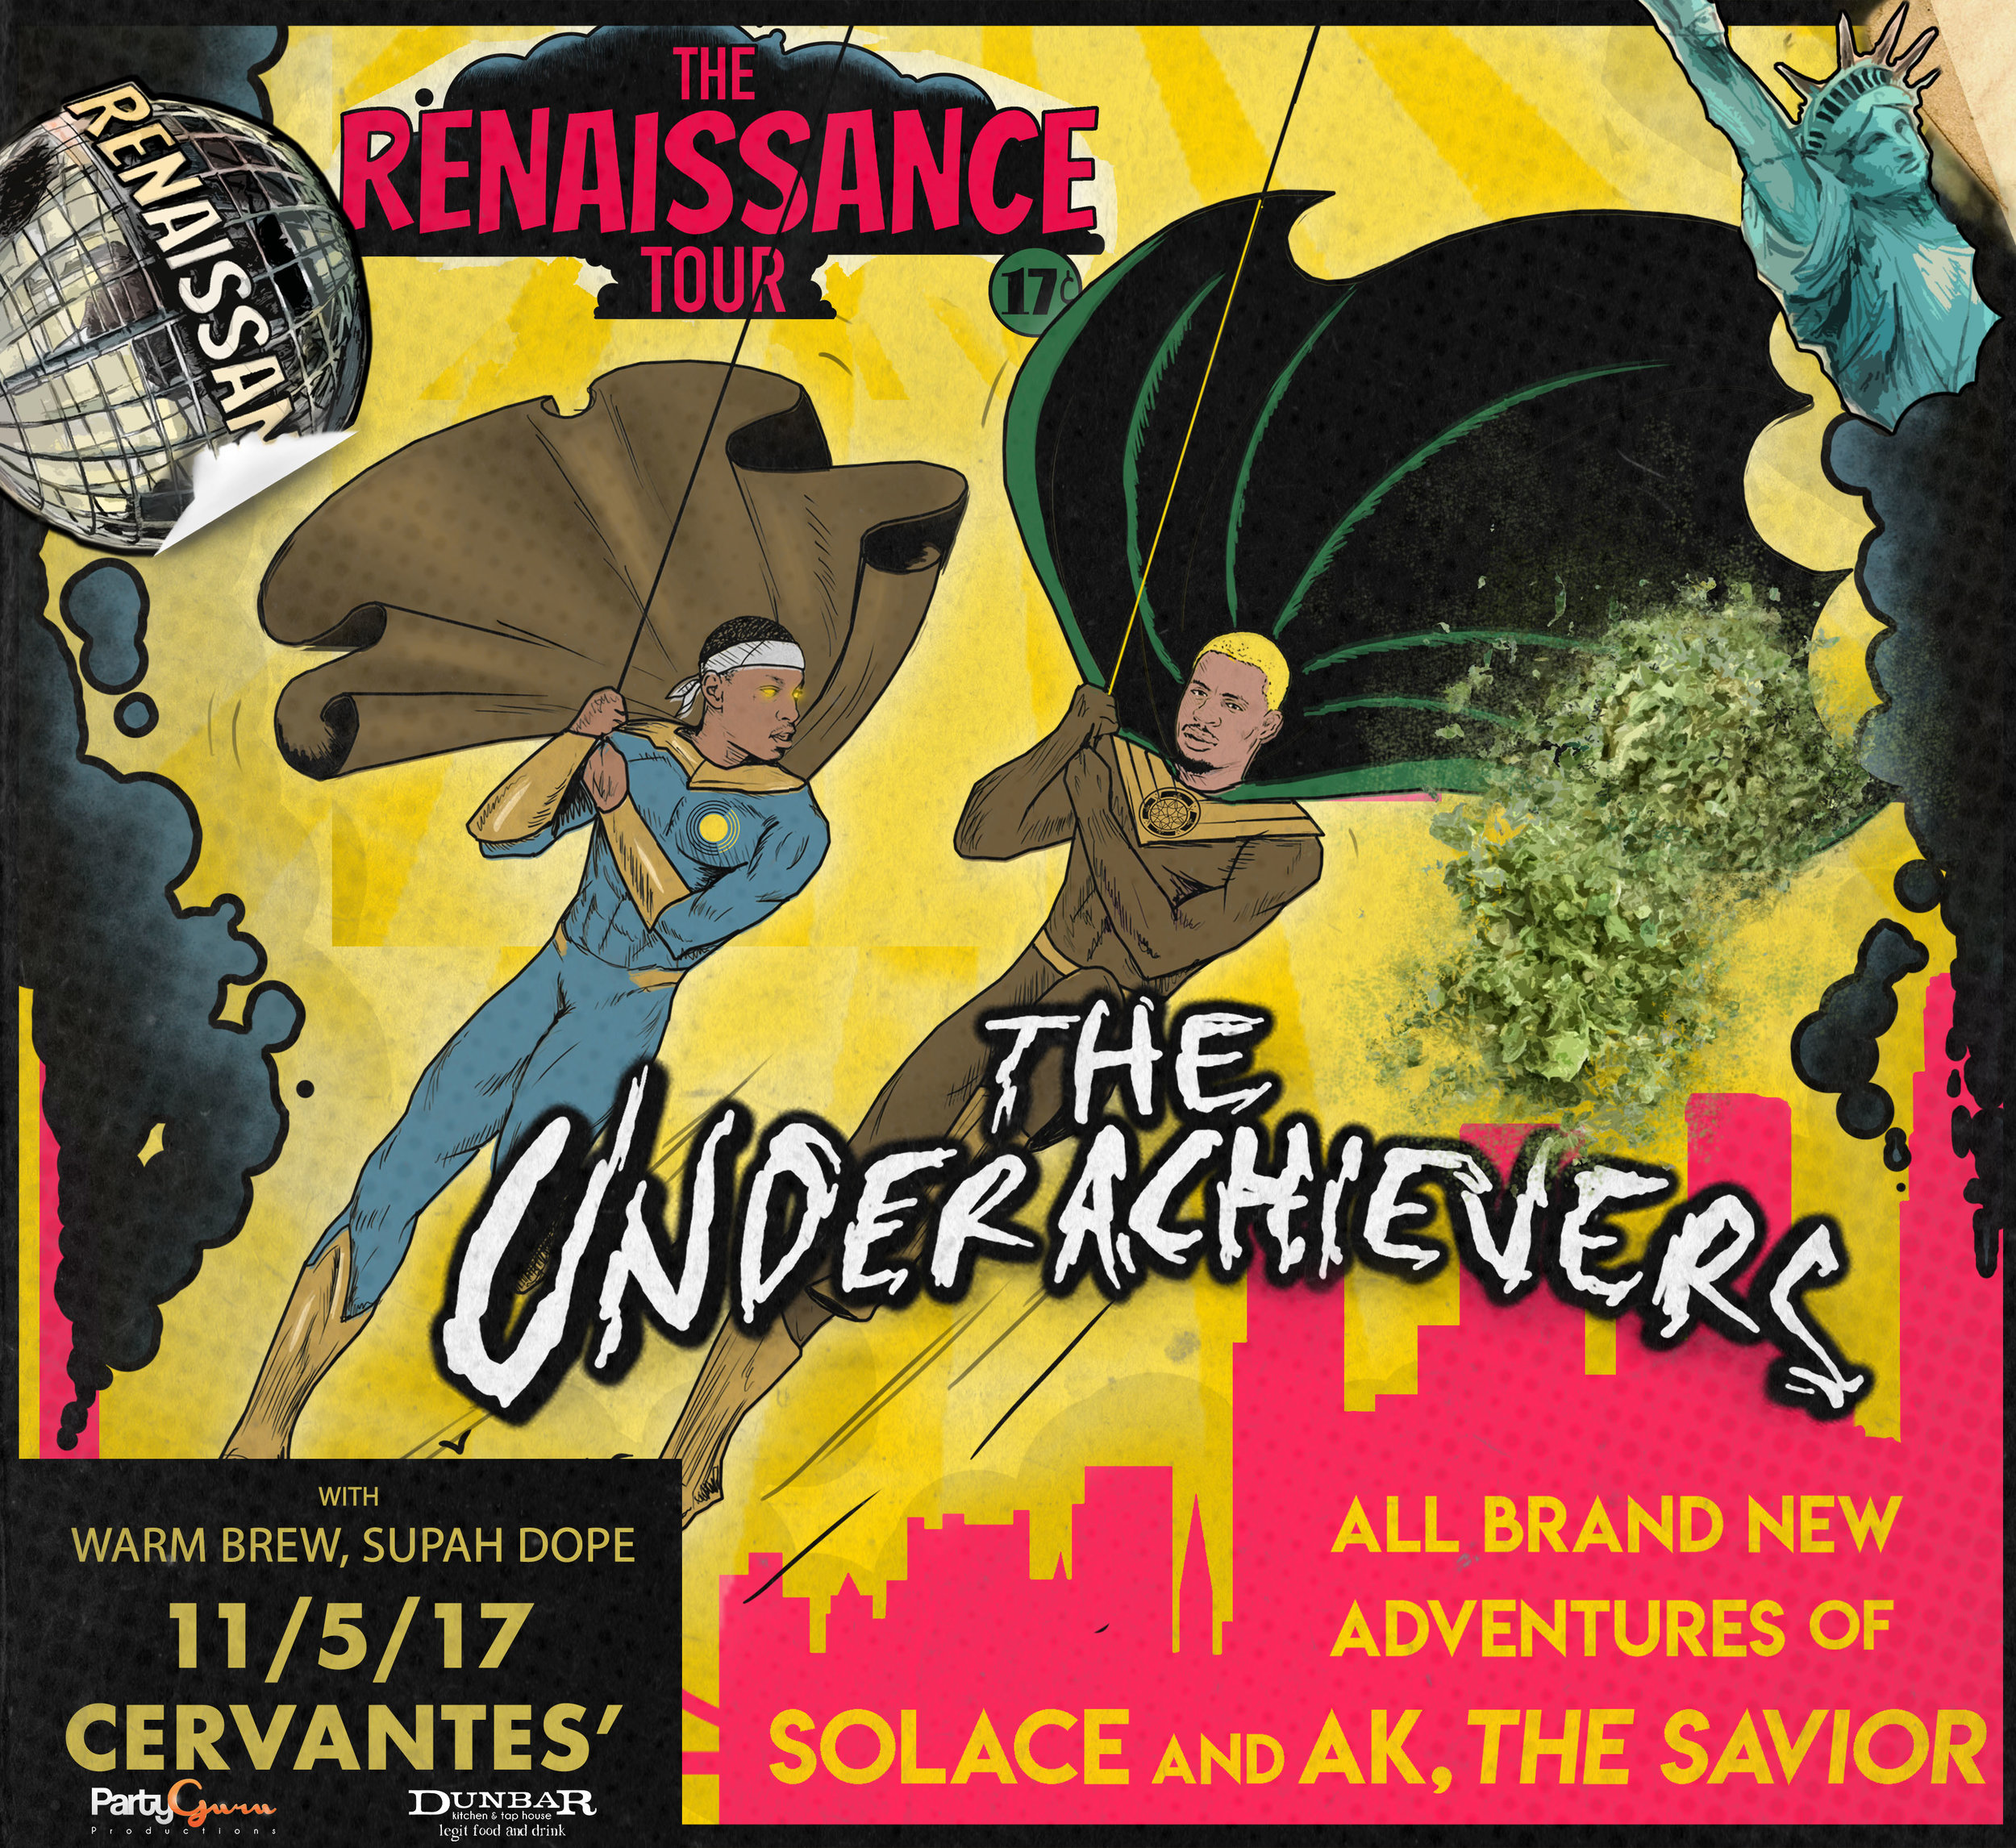 2017-11-05 - The Underachievers IG.jpg